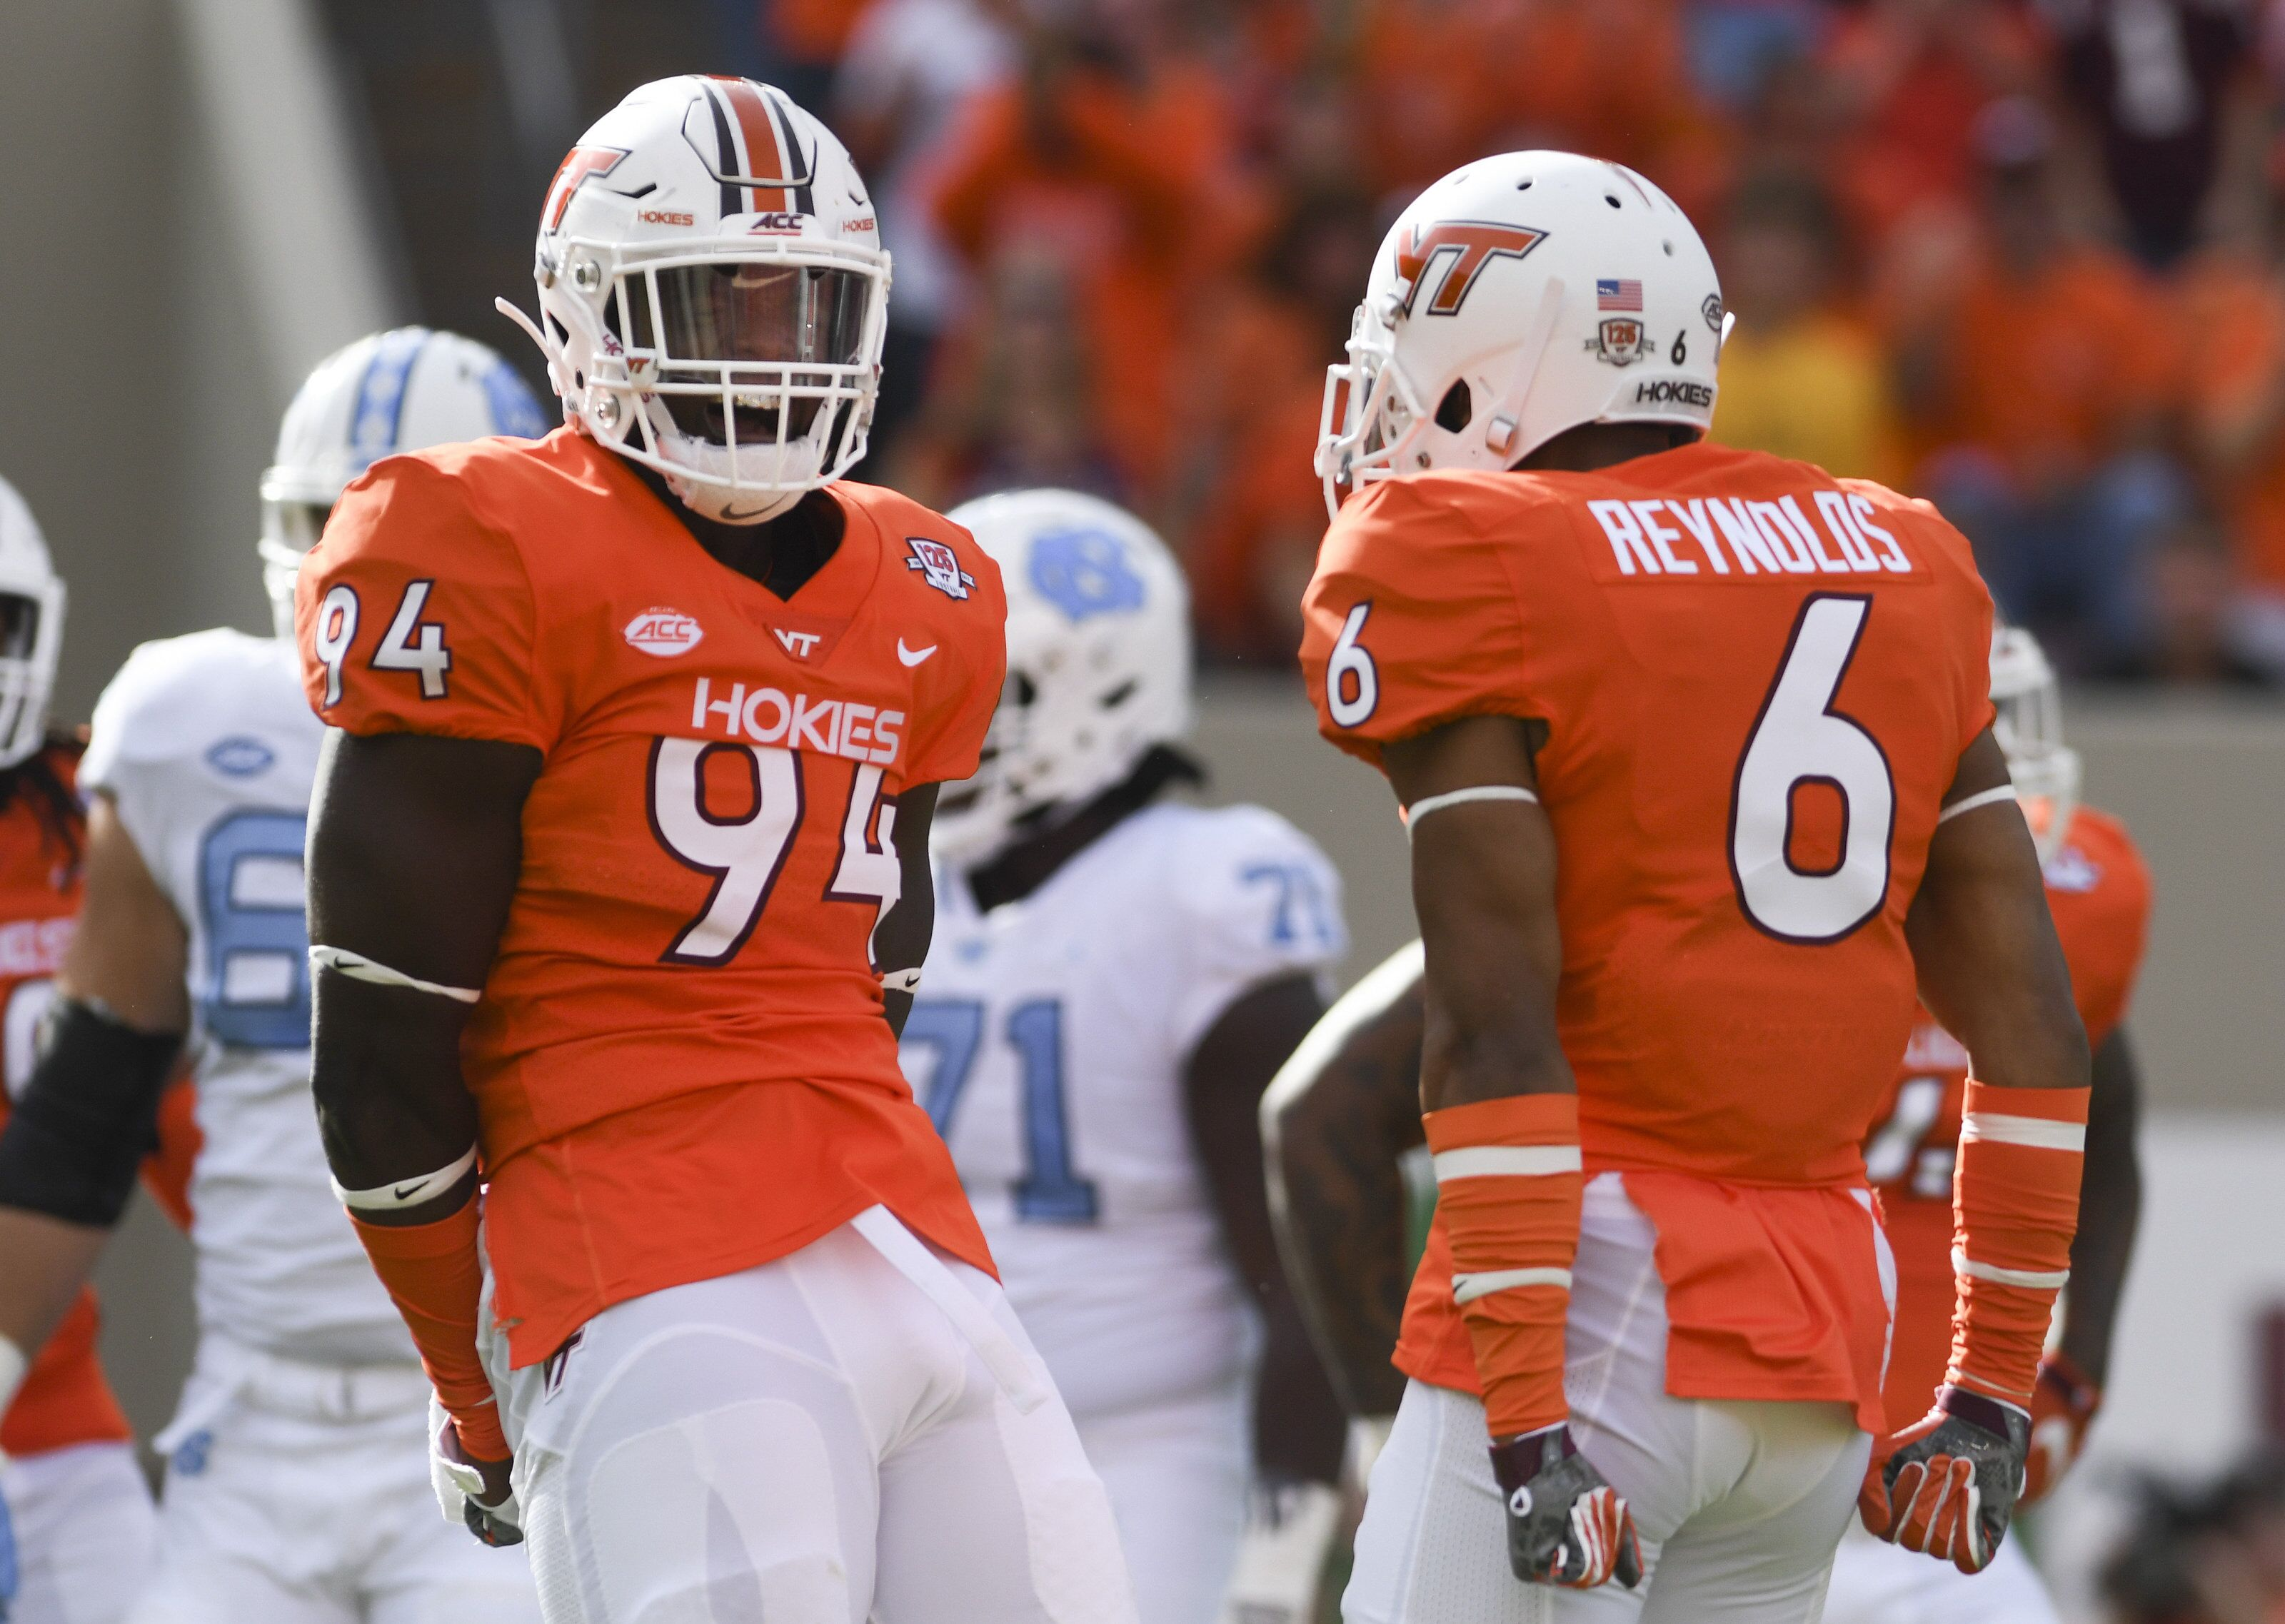 Miami football could add Virginia Tech Star DE Trevon Hill